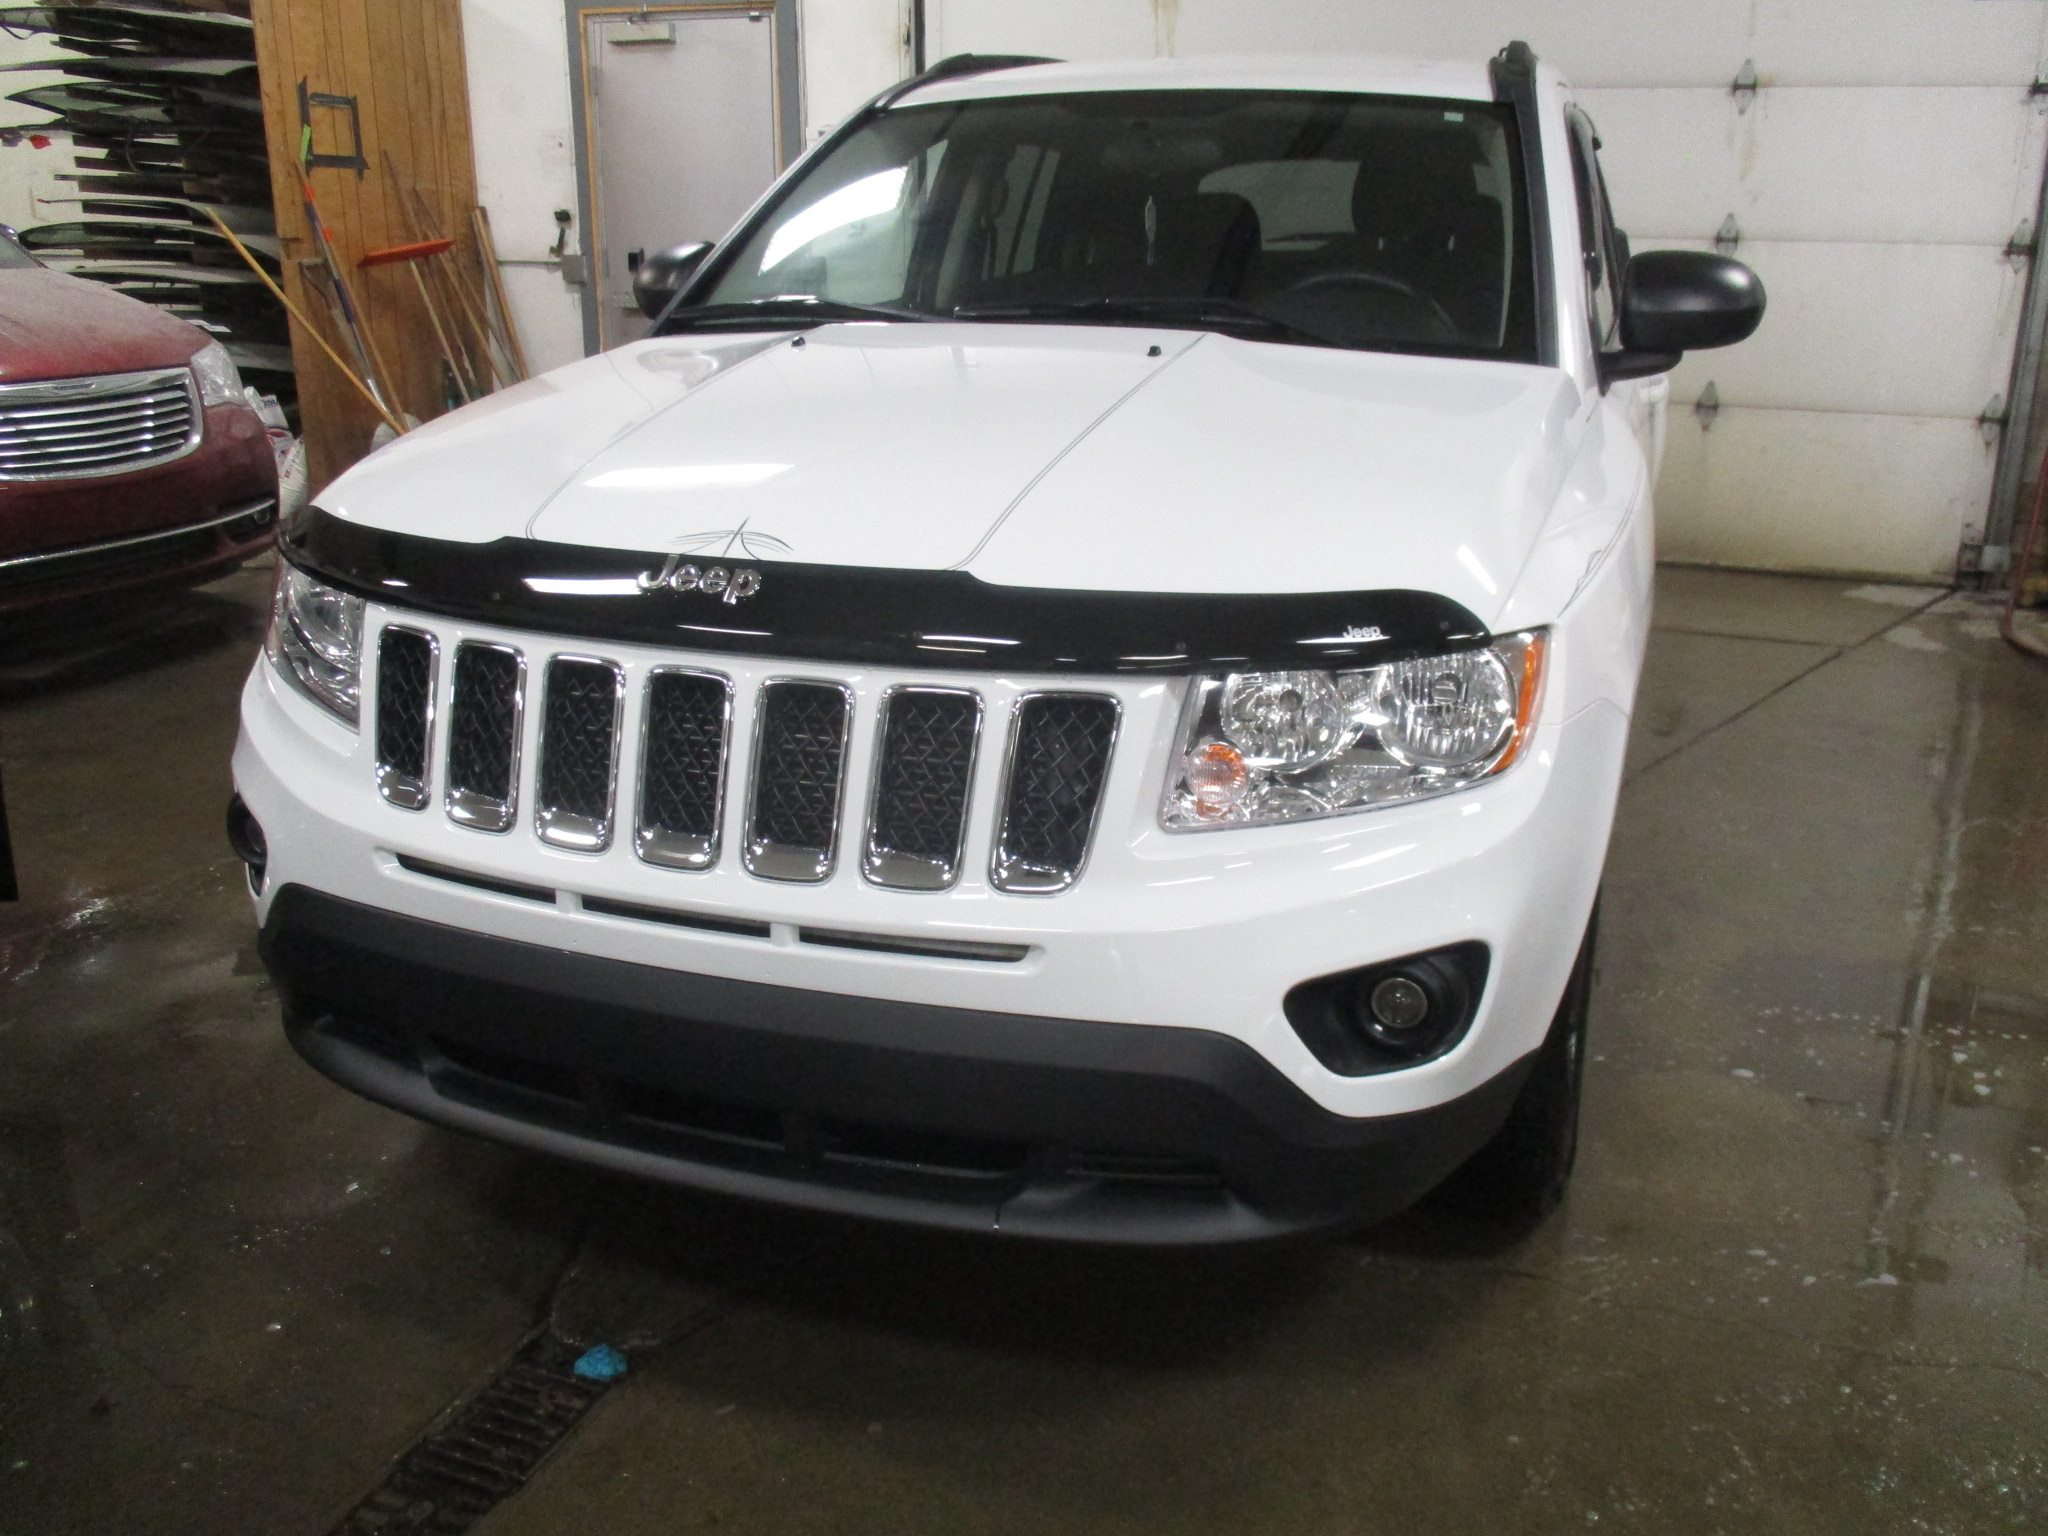 White Jeep - After